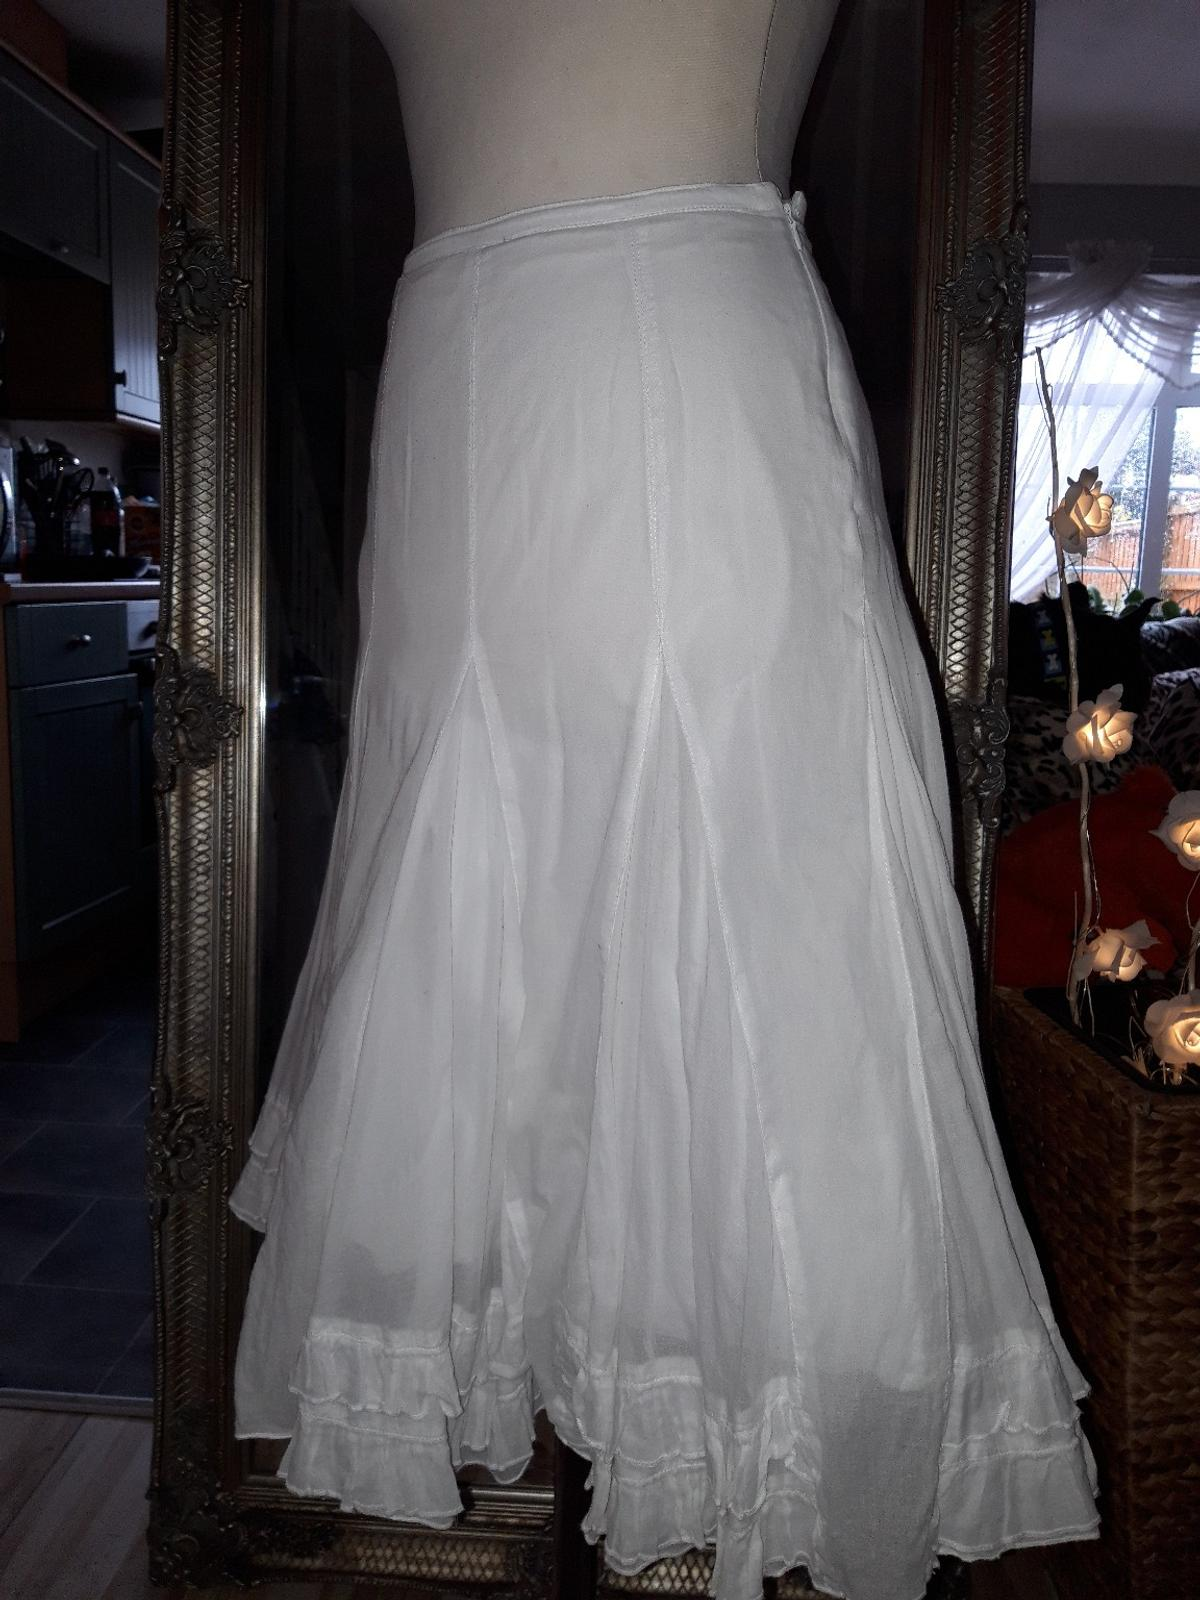 89c1d9e90f MONSOON WHITE SKIRT in CH63 Wirral for £5.00 for sale - Shpock